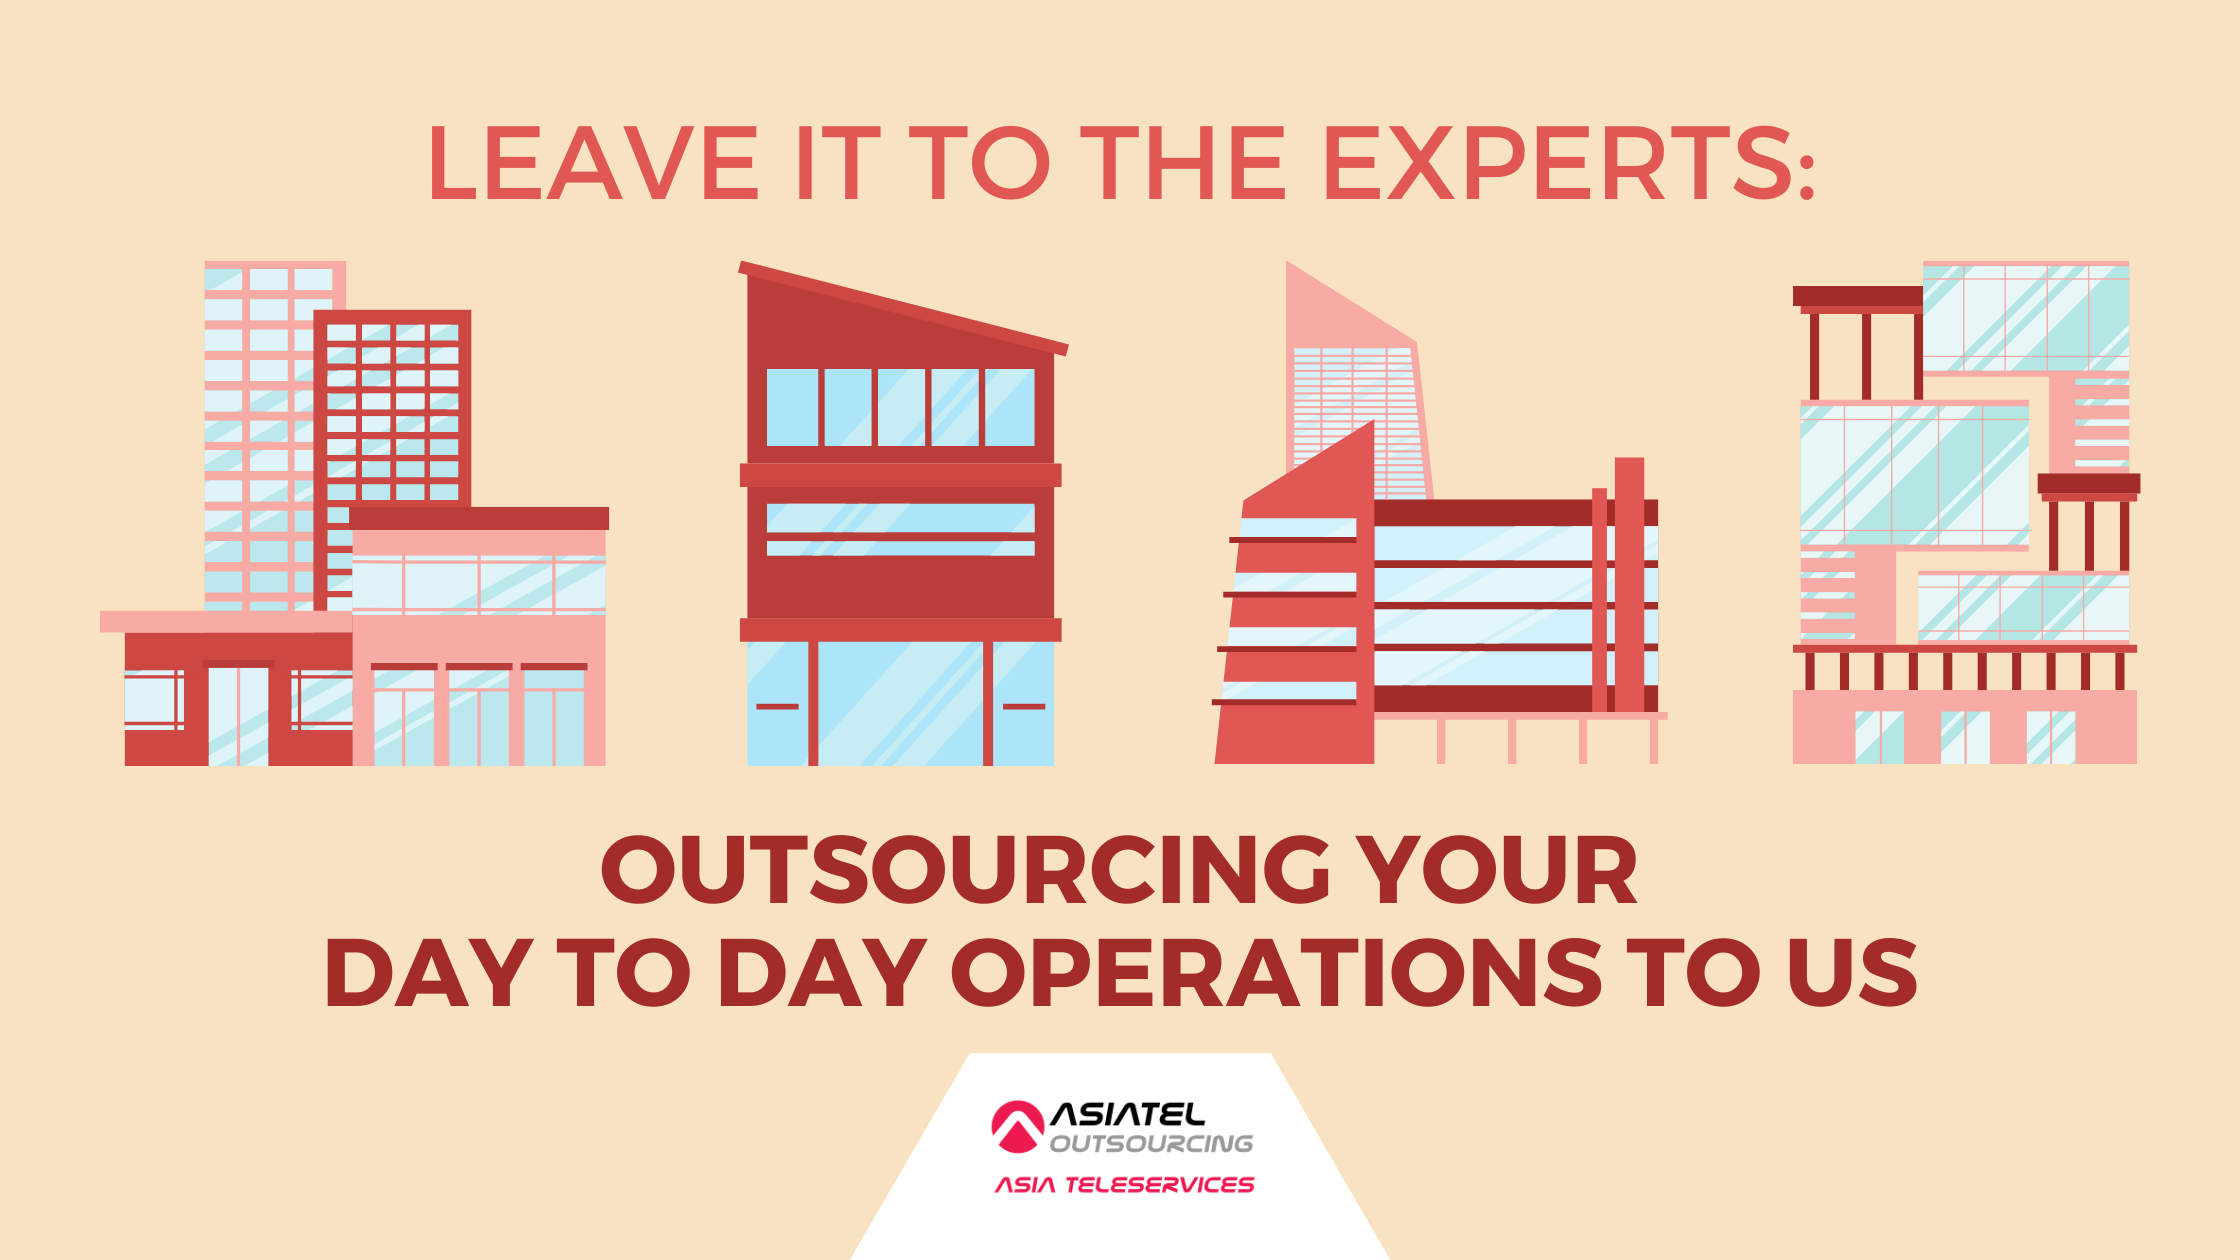 Leave It To The Experts: Outsourcing Your Day To Day Operations To Us